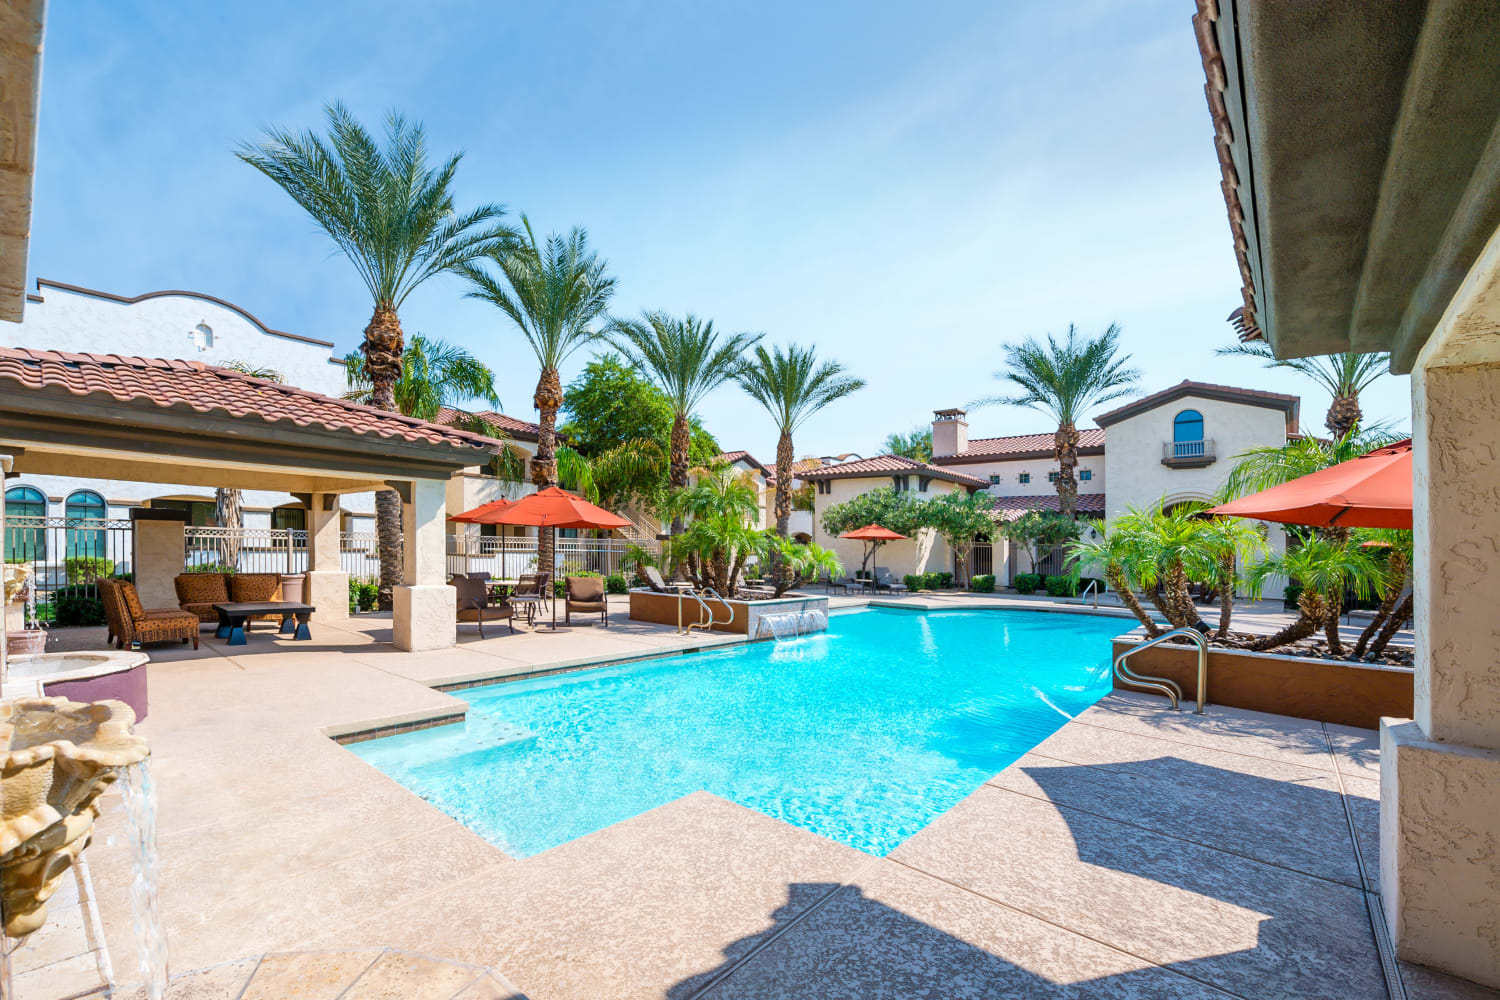 Enjoy a sparkling swimming pool at Dobson 2222 in Chandler, Arizona